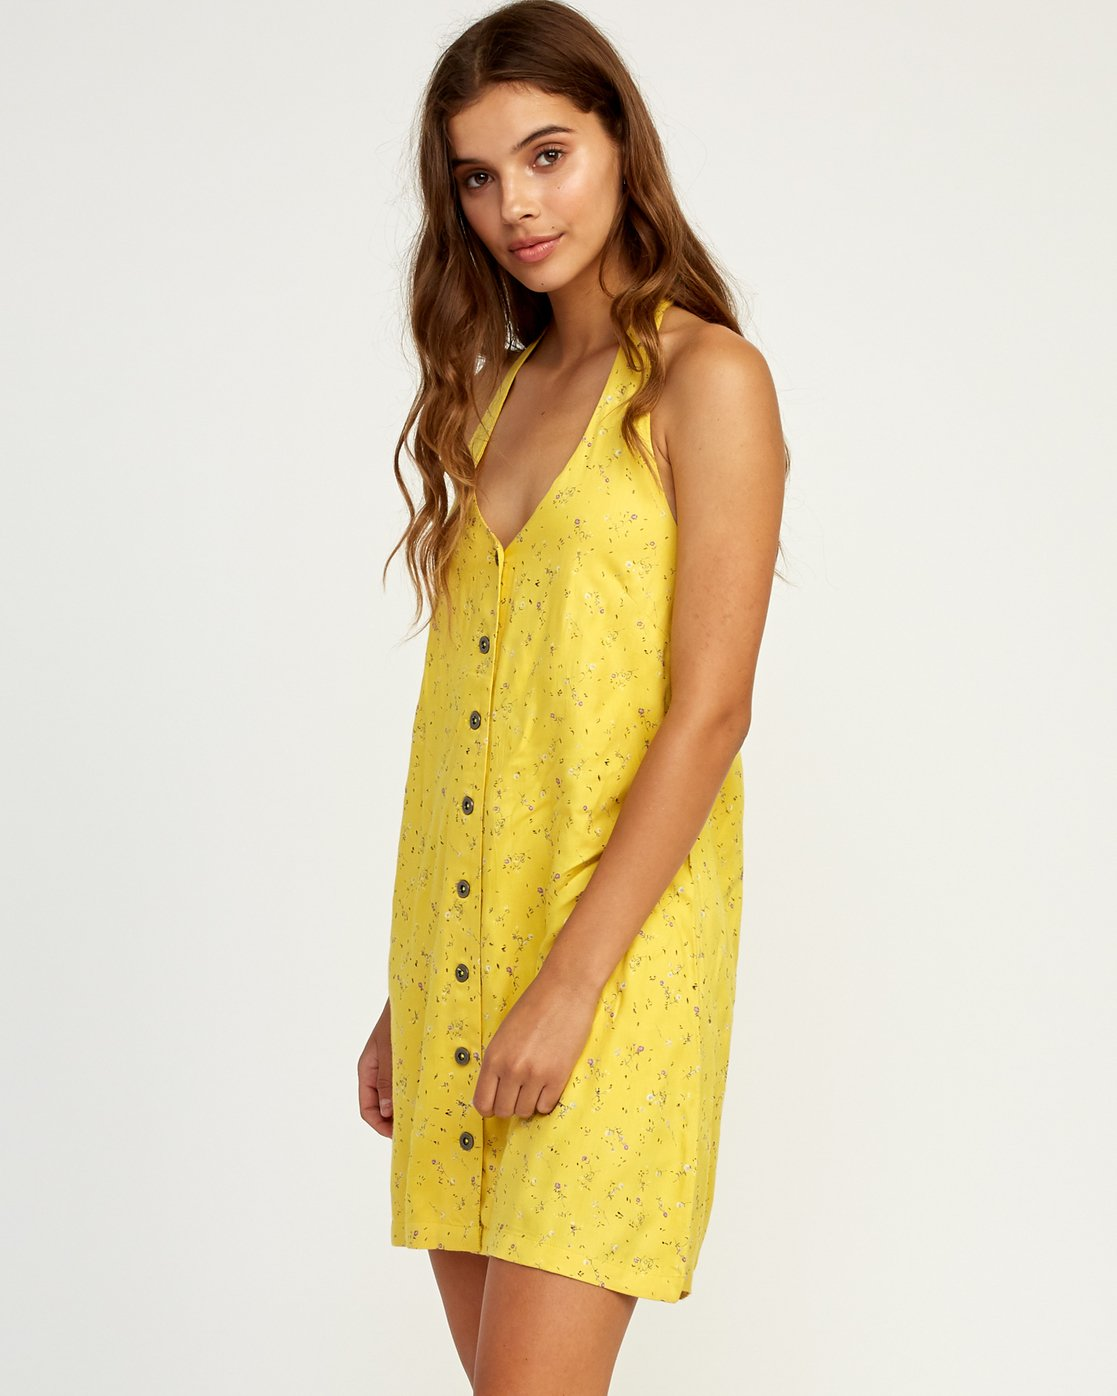 1 90s Baby Halter Dress Yellow WD13TR90 RVCA